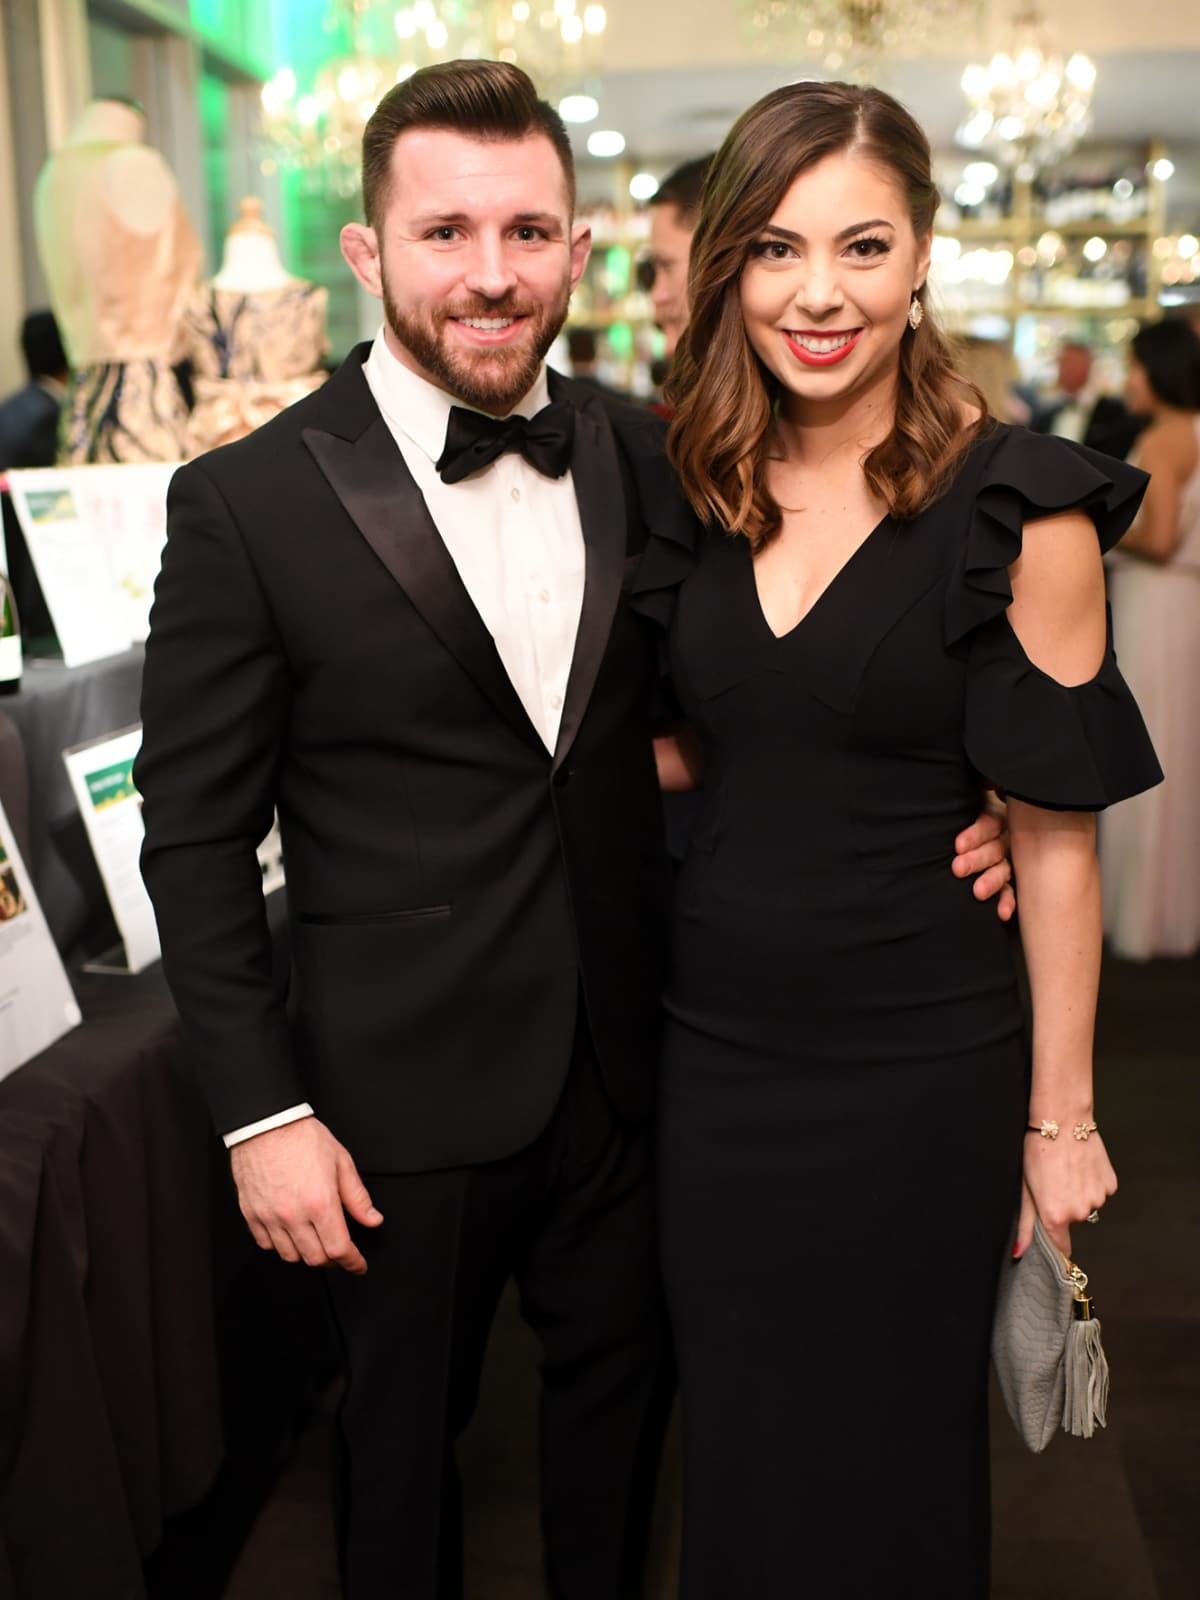 Houston, Jungle Book Gala, Sept. 2017, Alex Samia, Shelby Samia